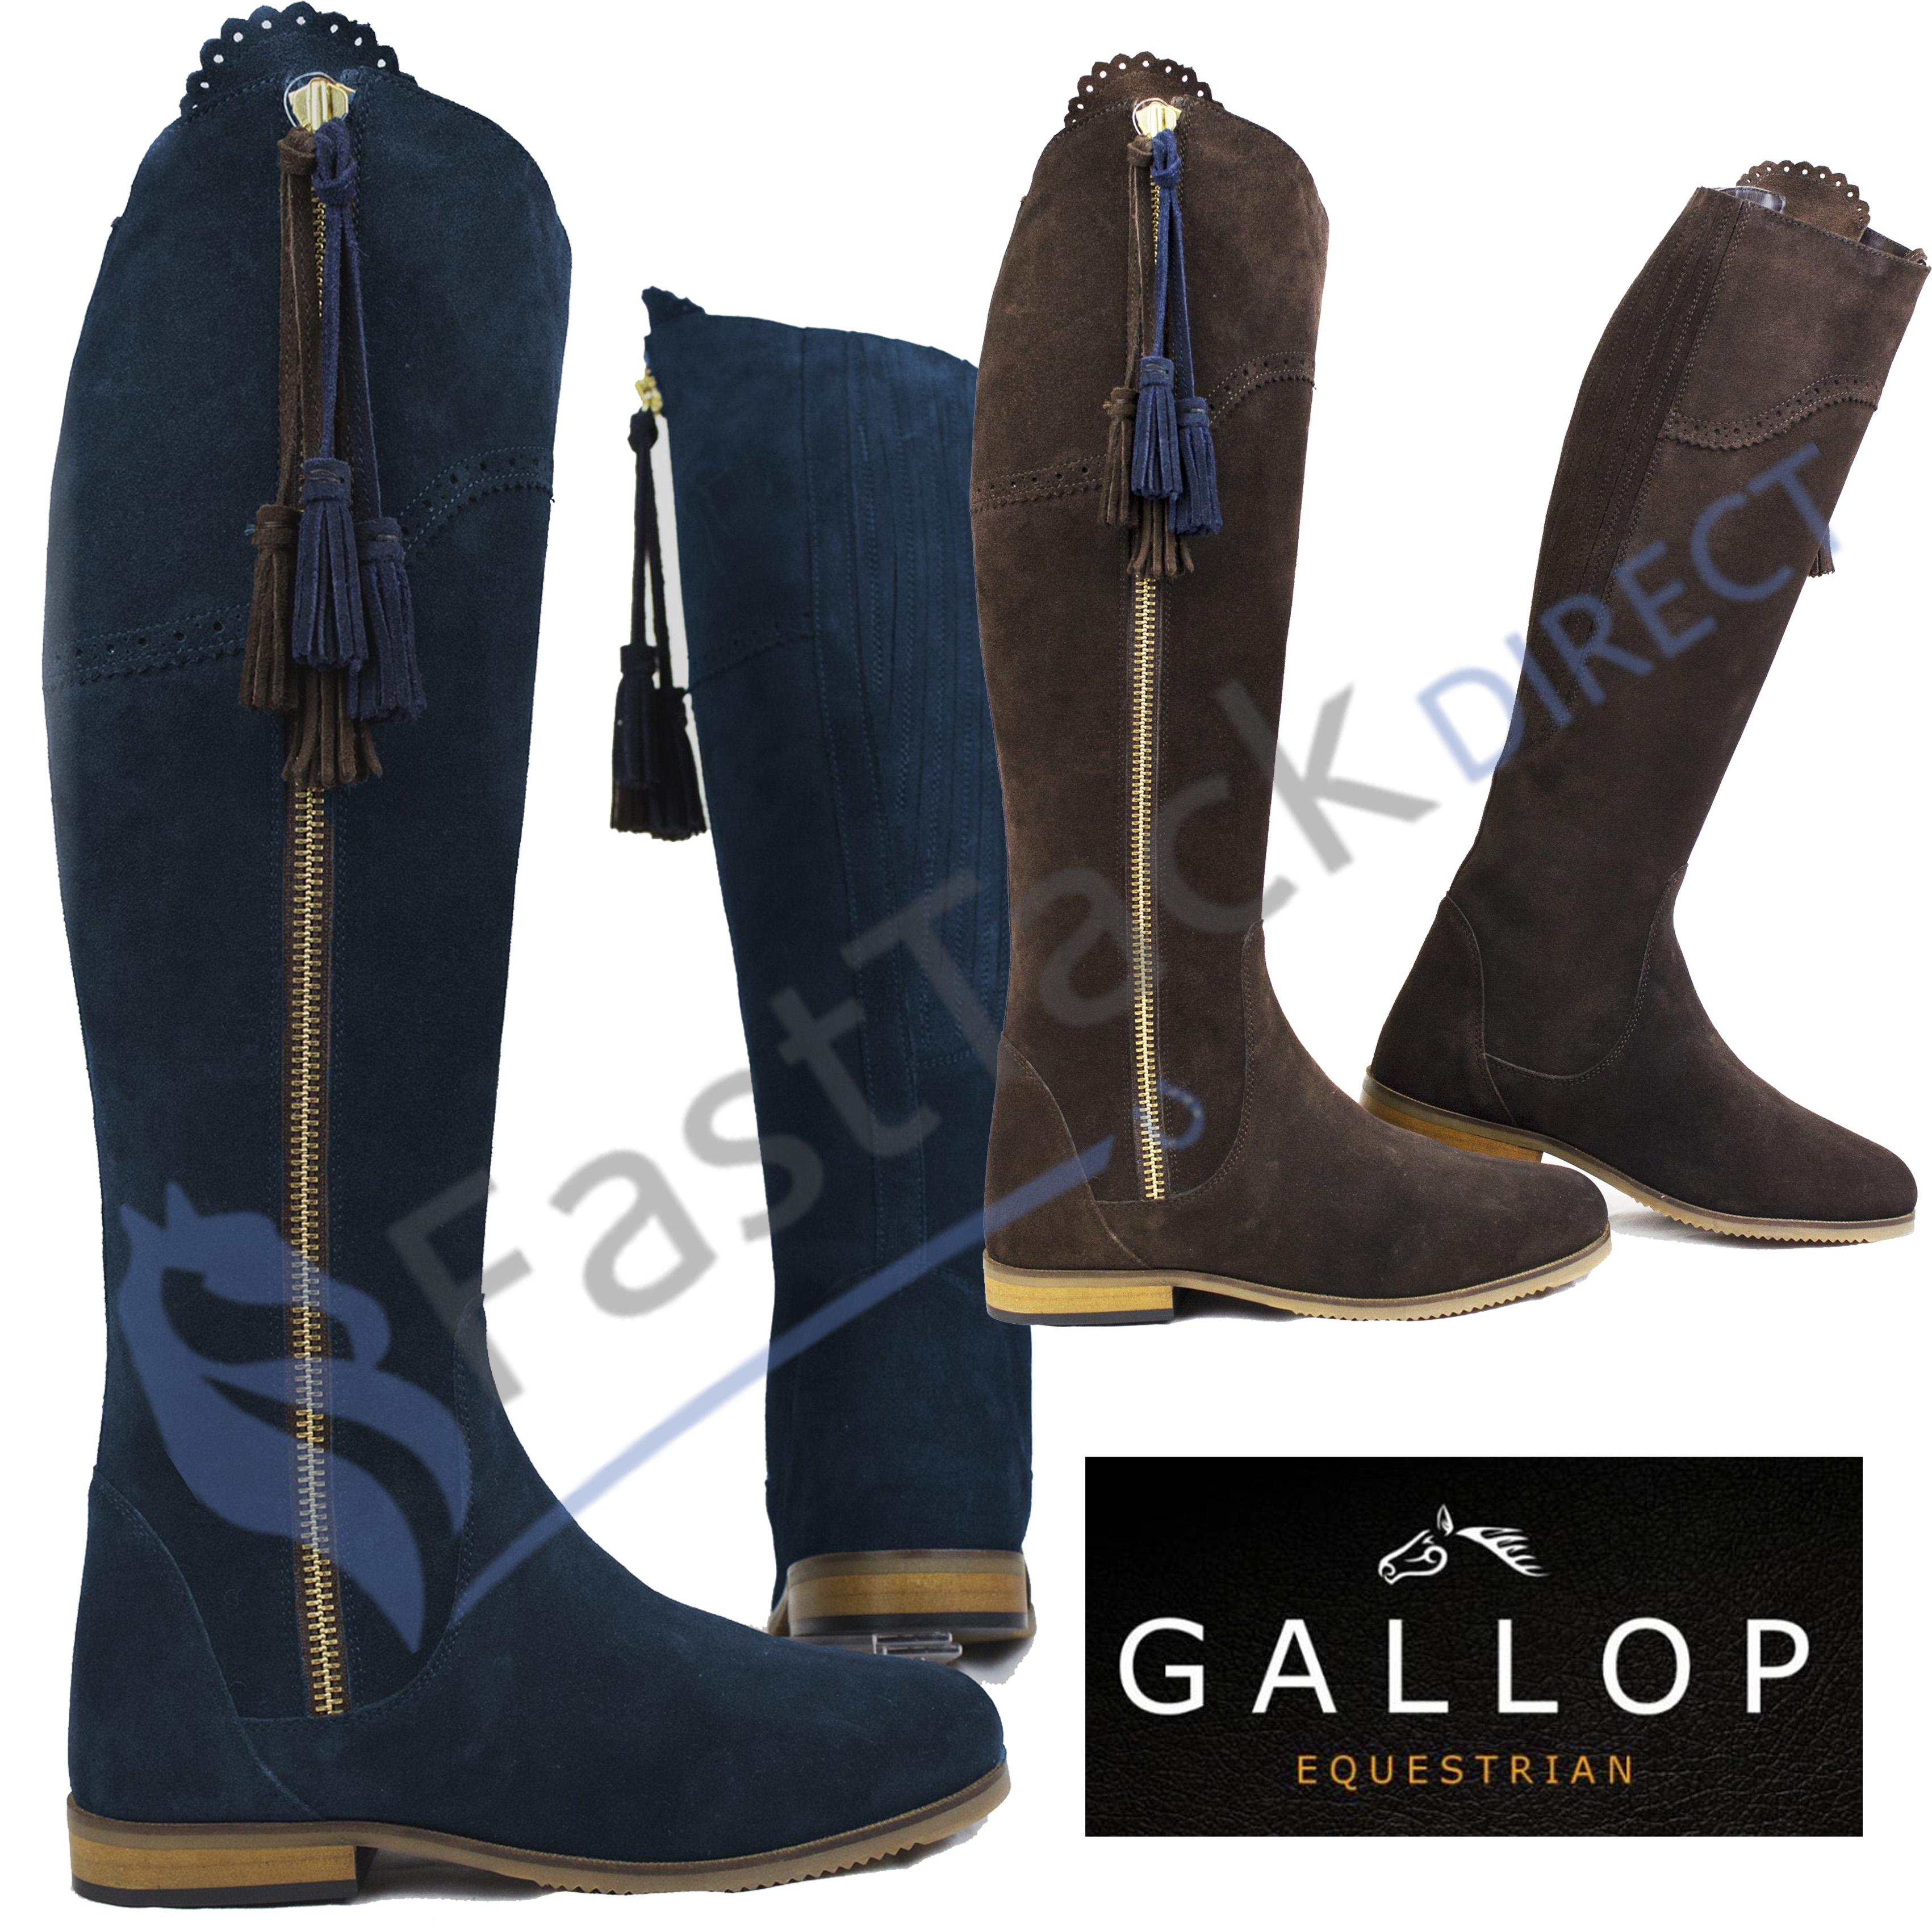 Gallop Seville Spanish Style Long Suede